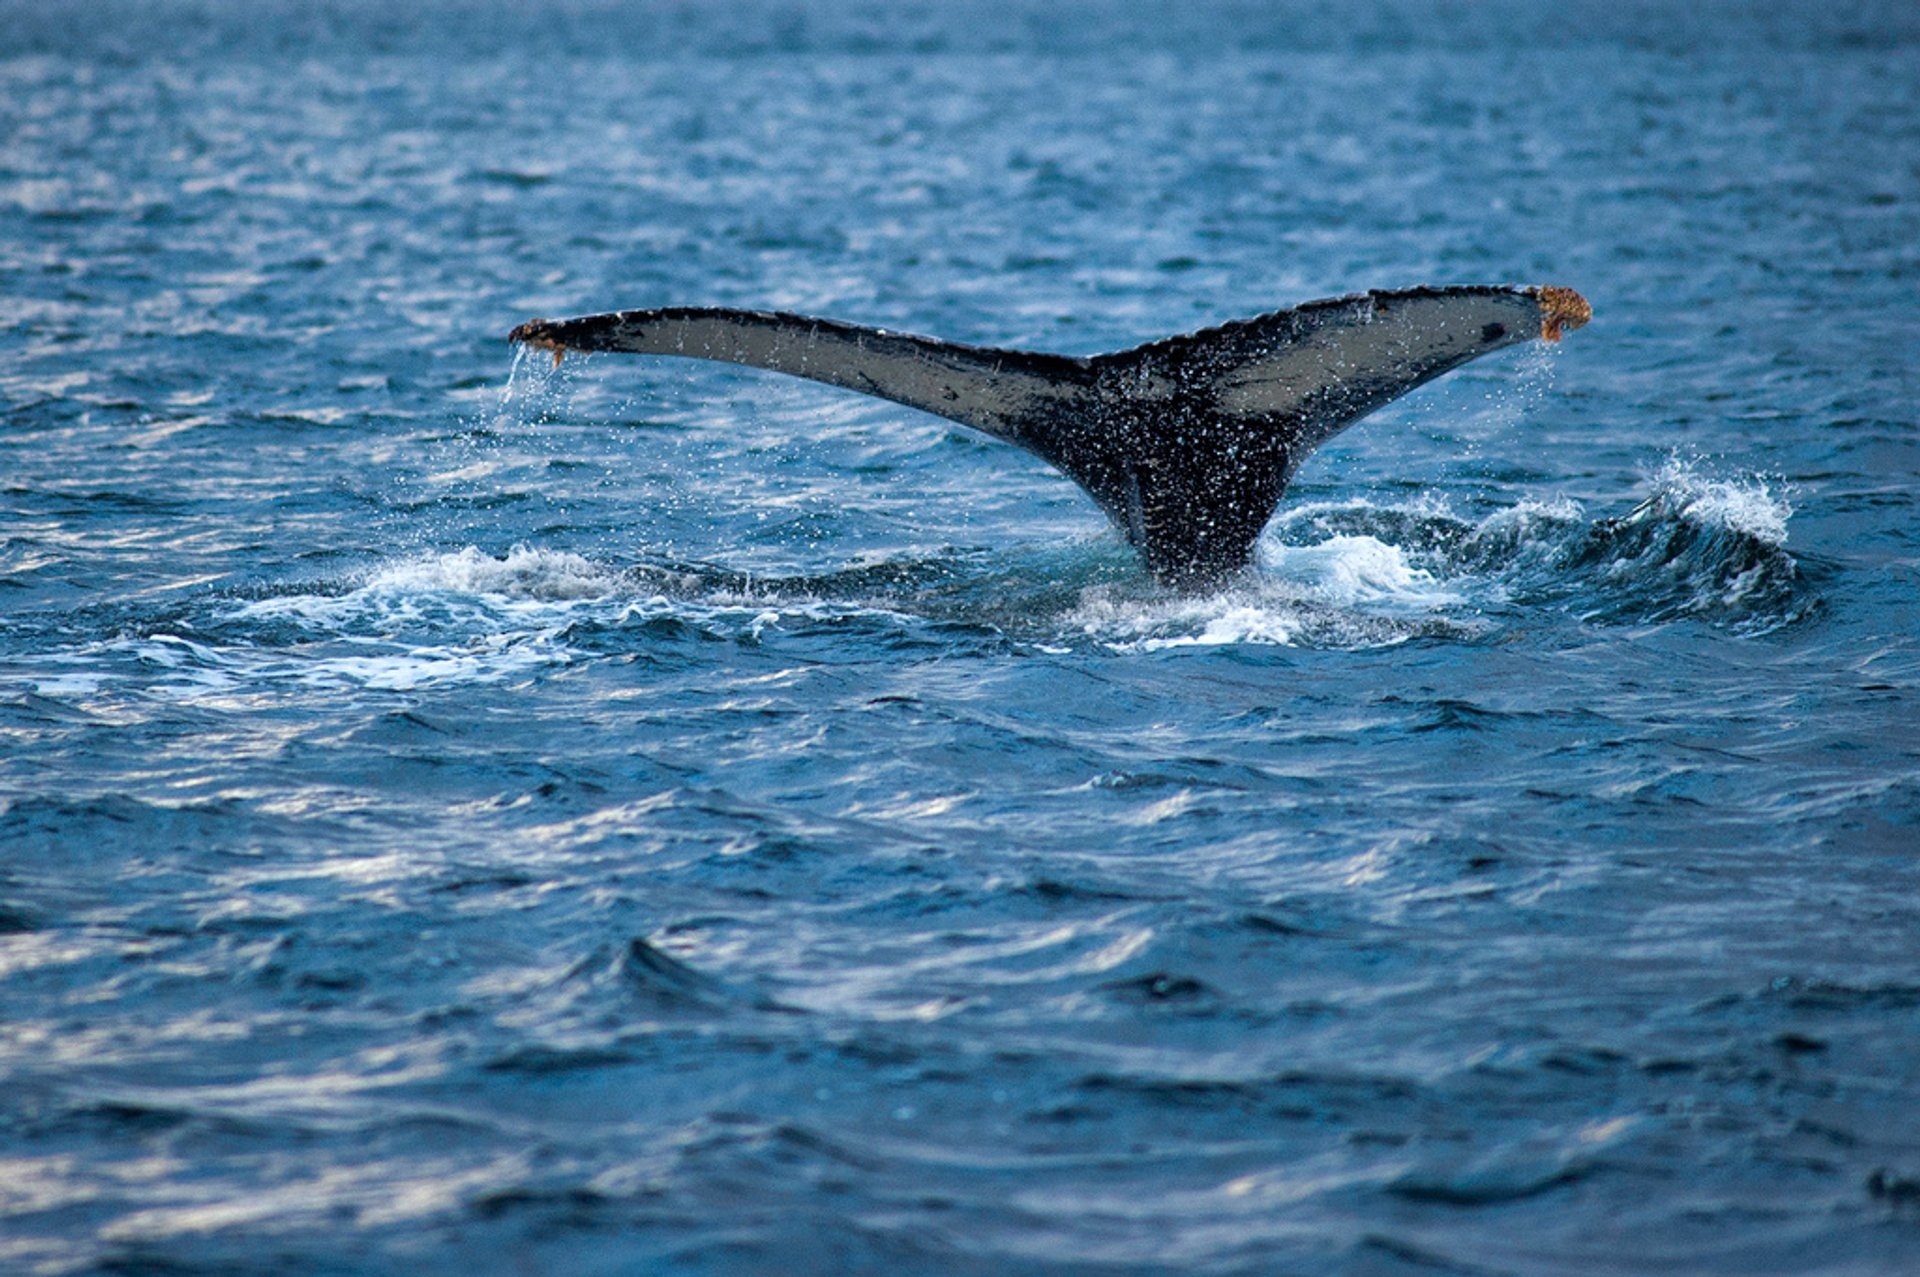 Whale Watching in Chile - Best Time